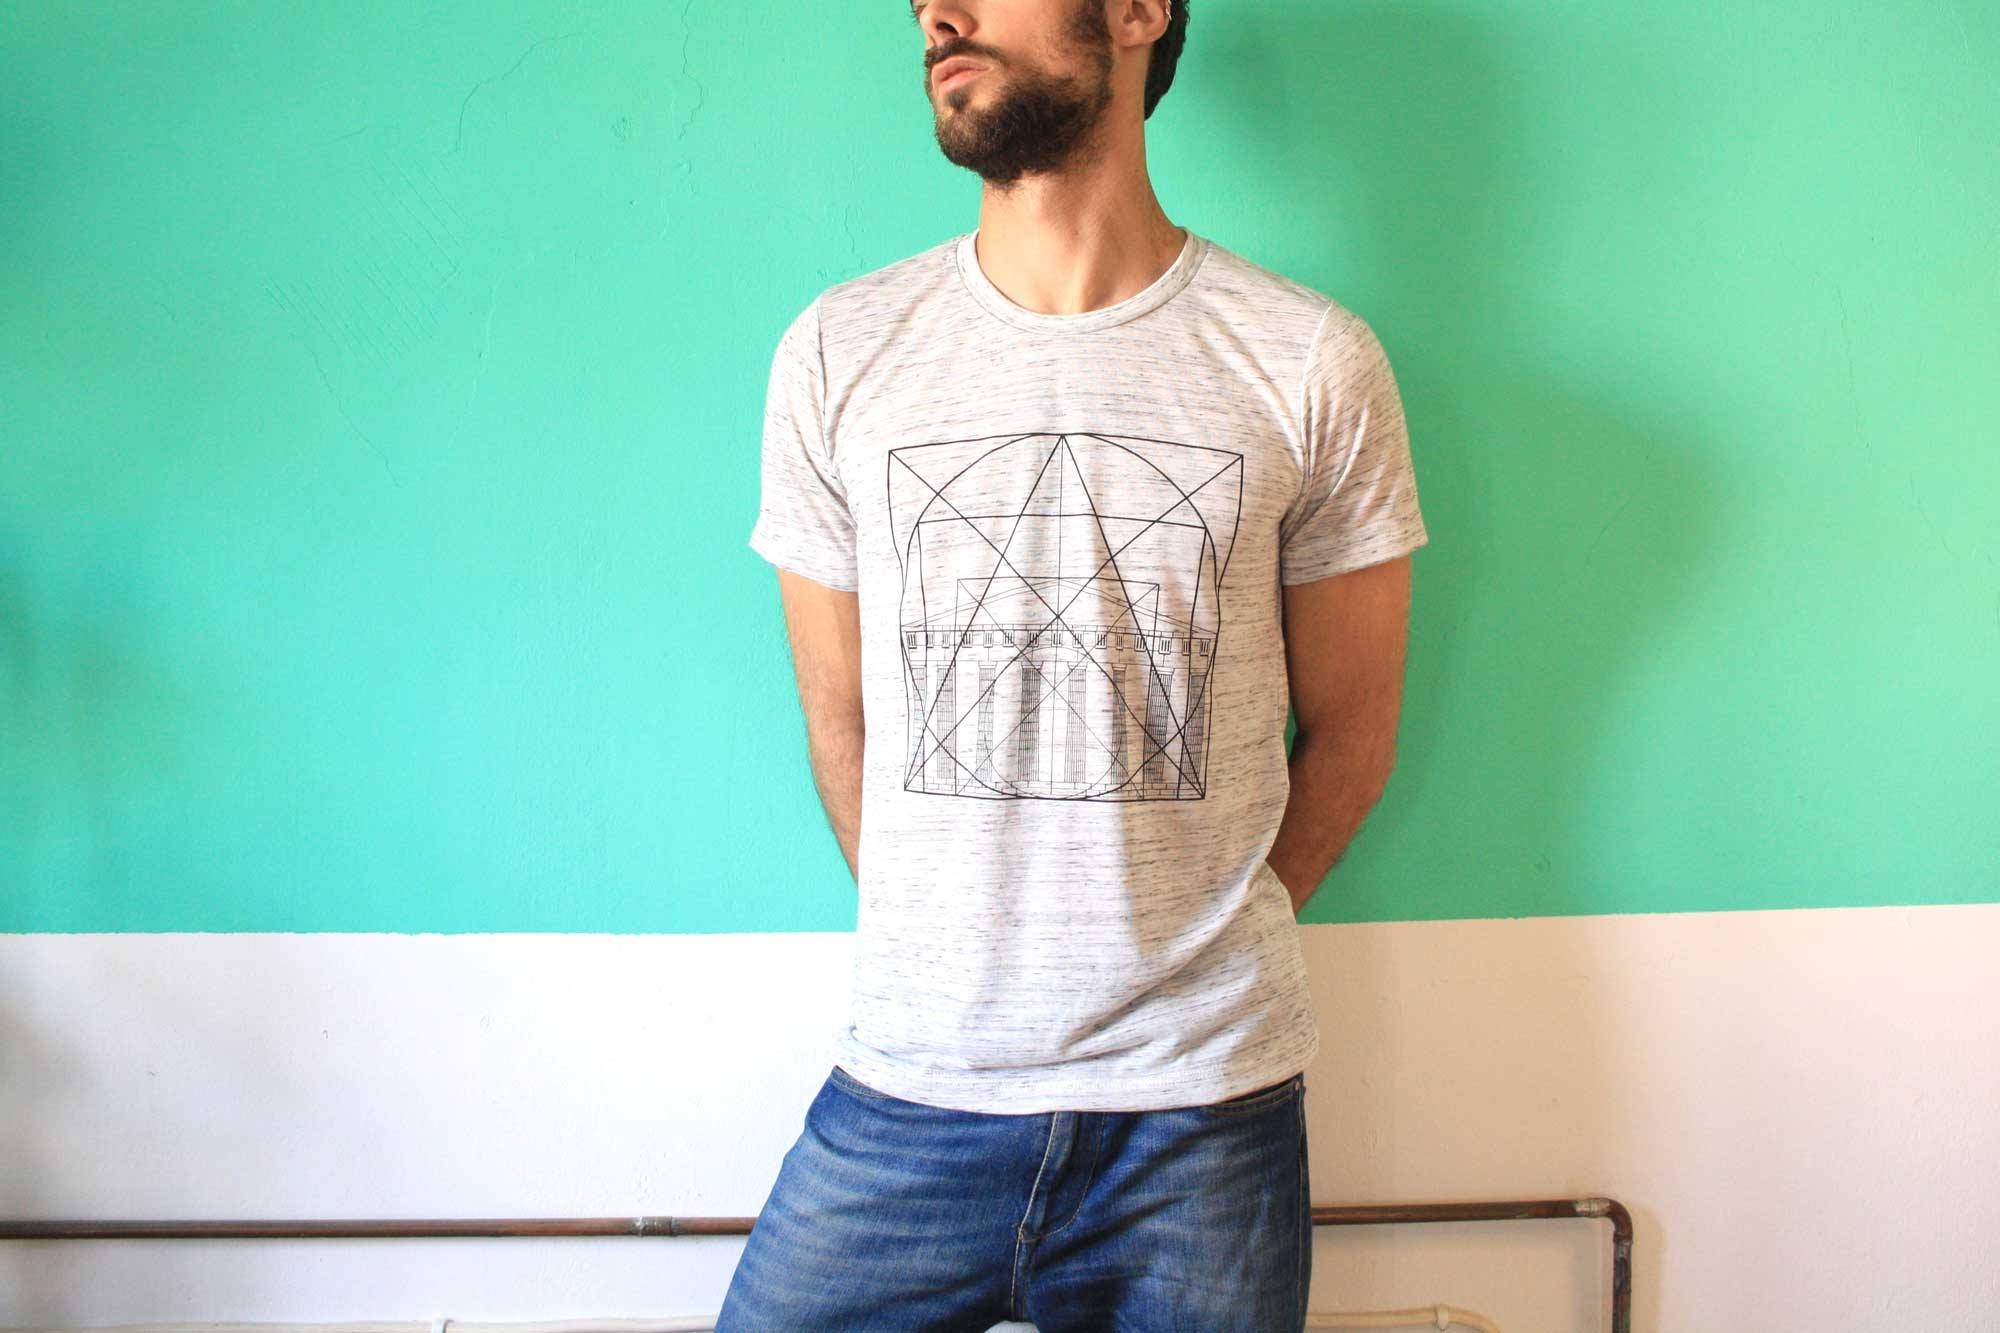 "<h5>""Golden Ratio"" Print T-shirt from Zacharias ca. €21.00</h5>"